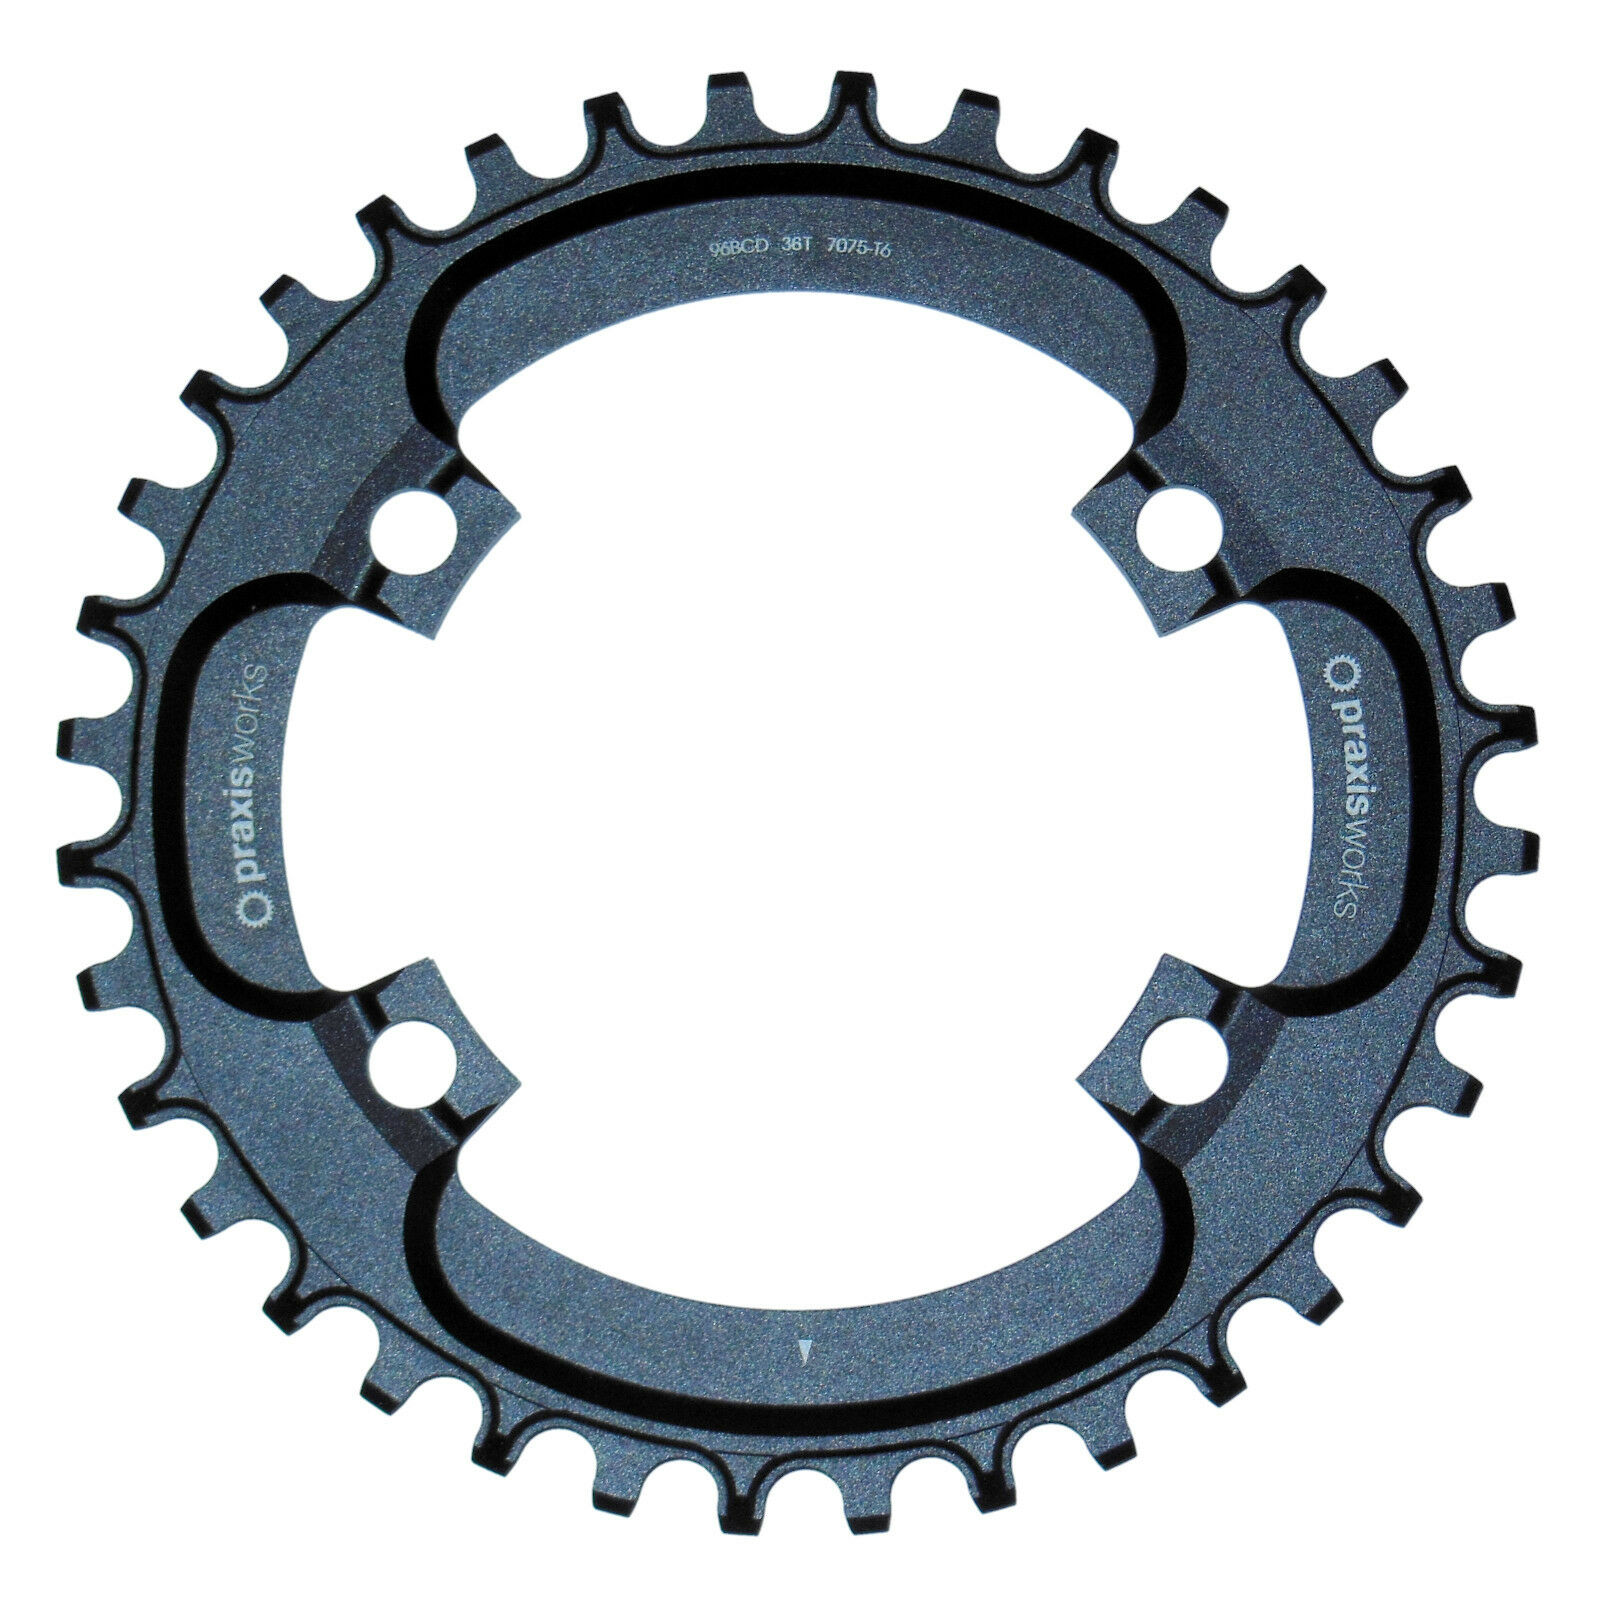 New Praxis Works Narrow Wide 36T Single  MTB Chainring 96 BCD Shimano 1x 10 11  save 50%-75%off